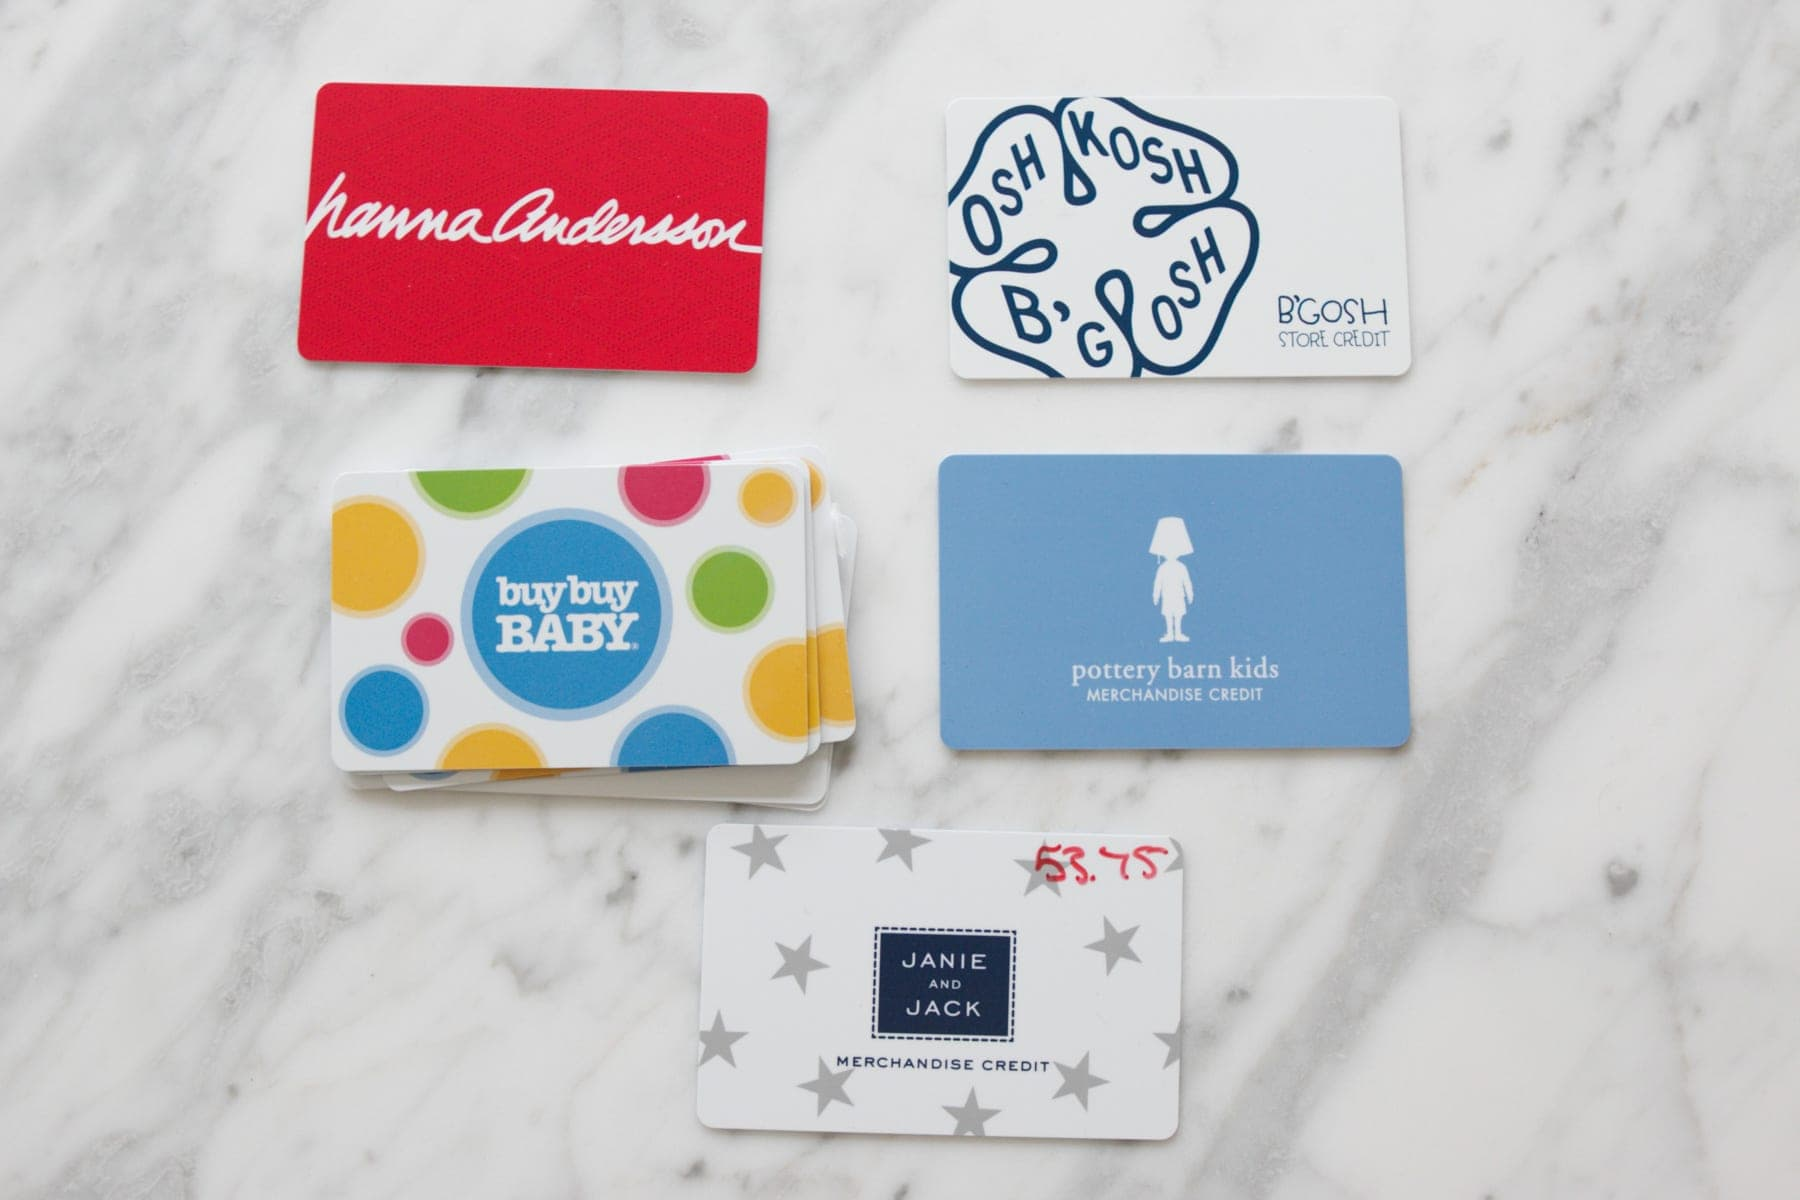 group gift cards by type